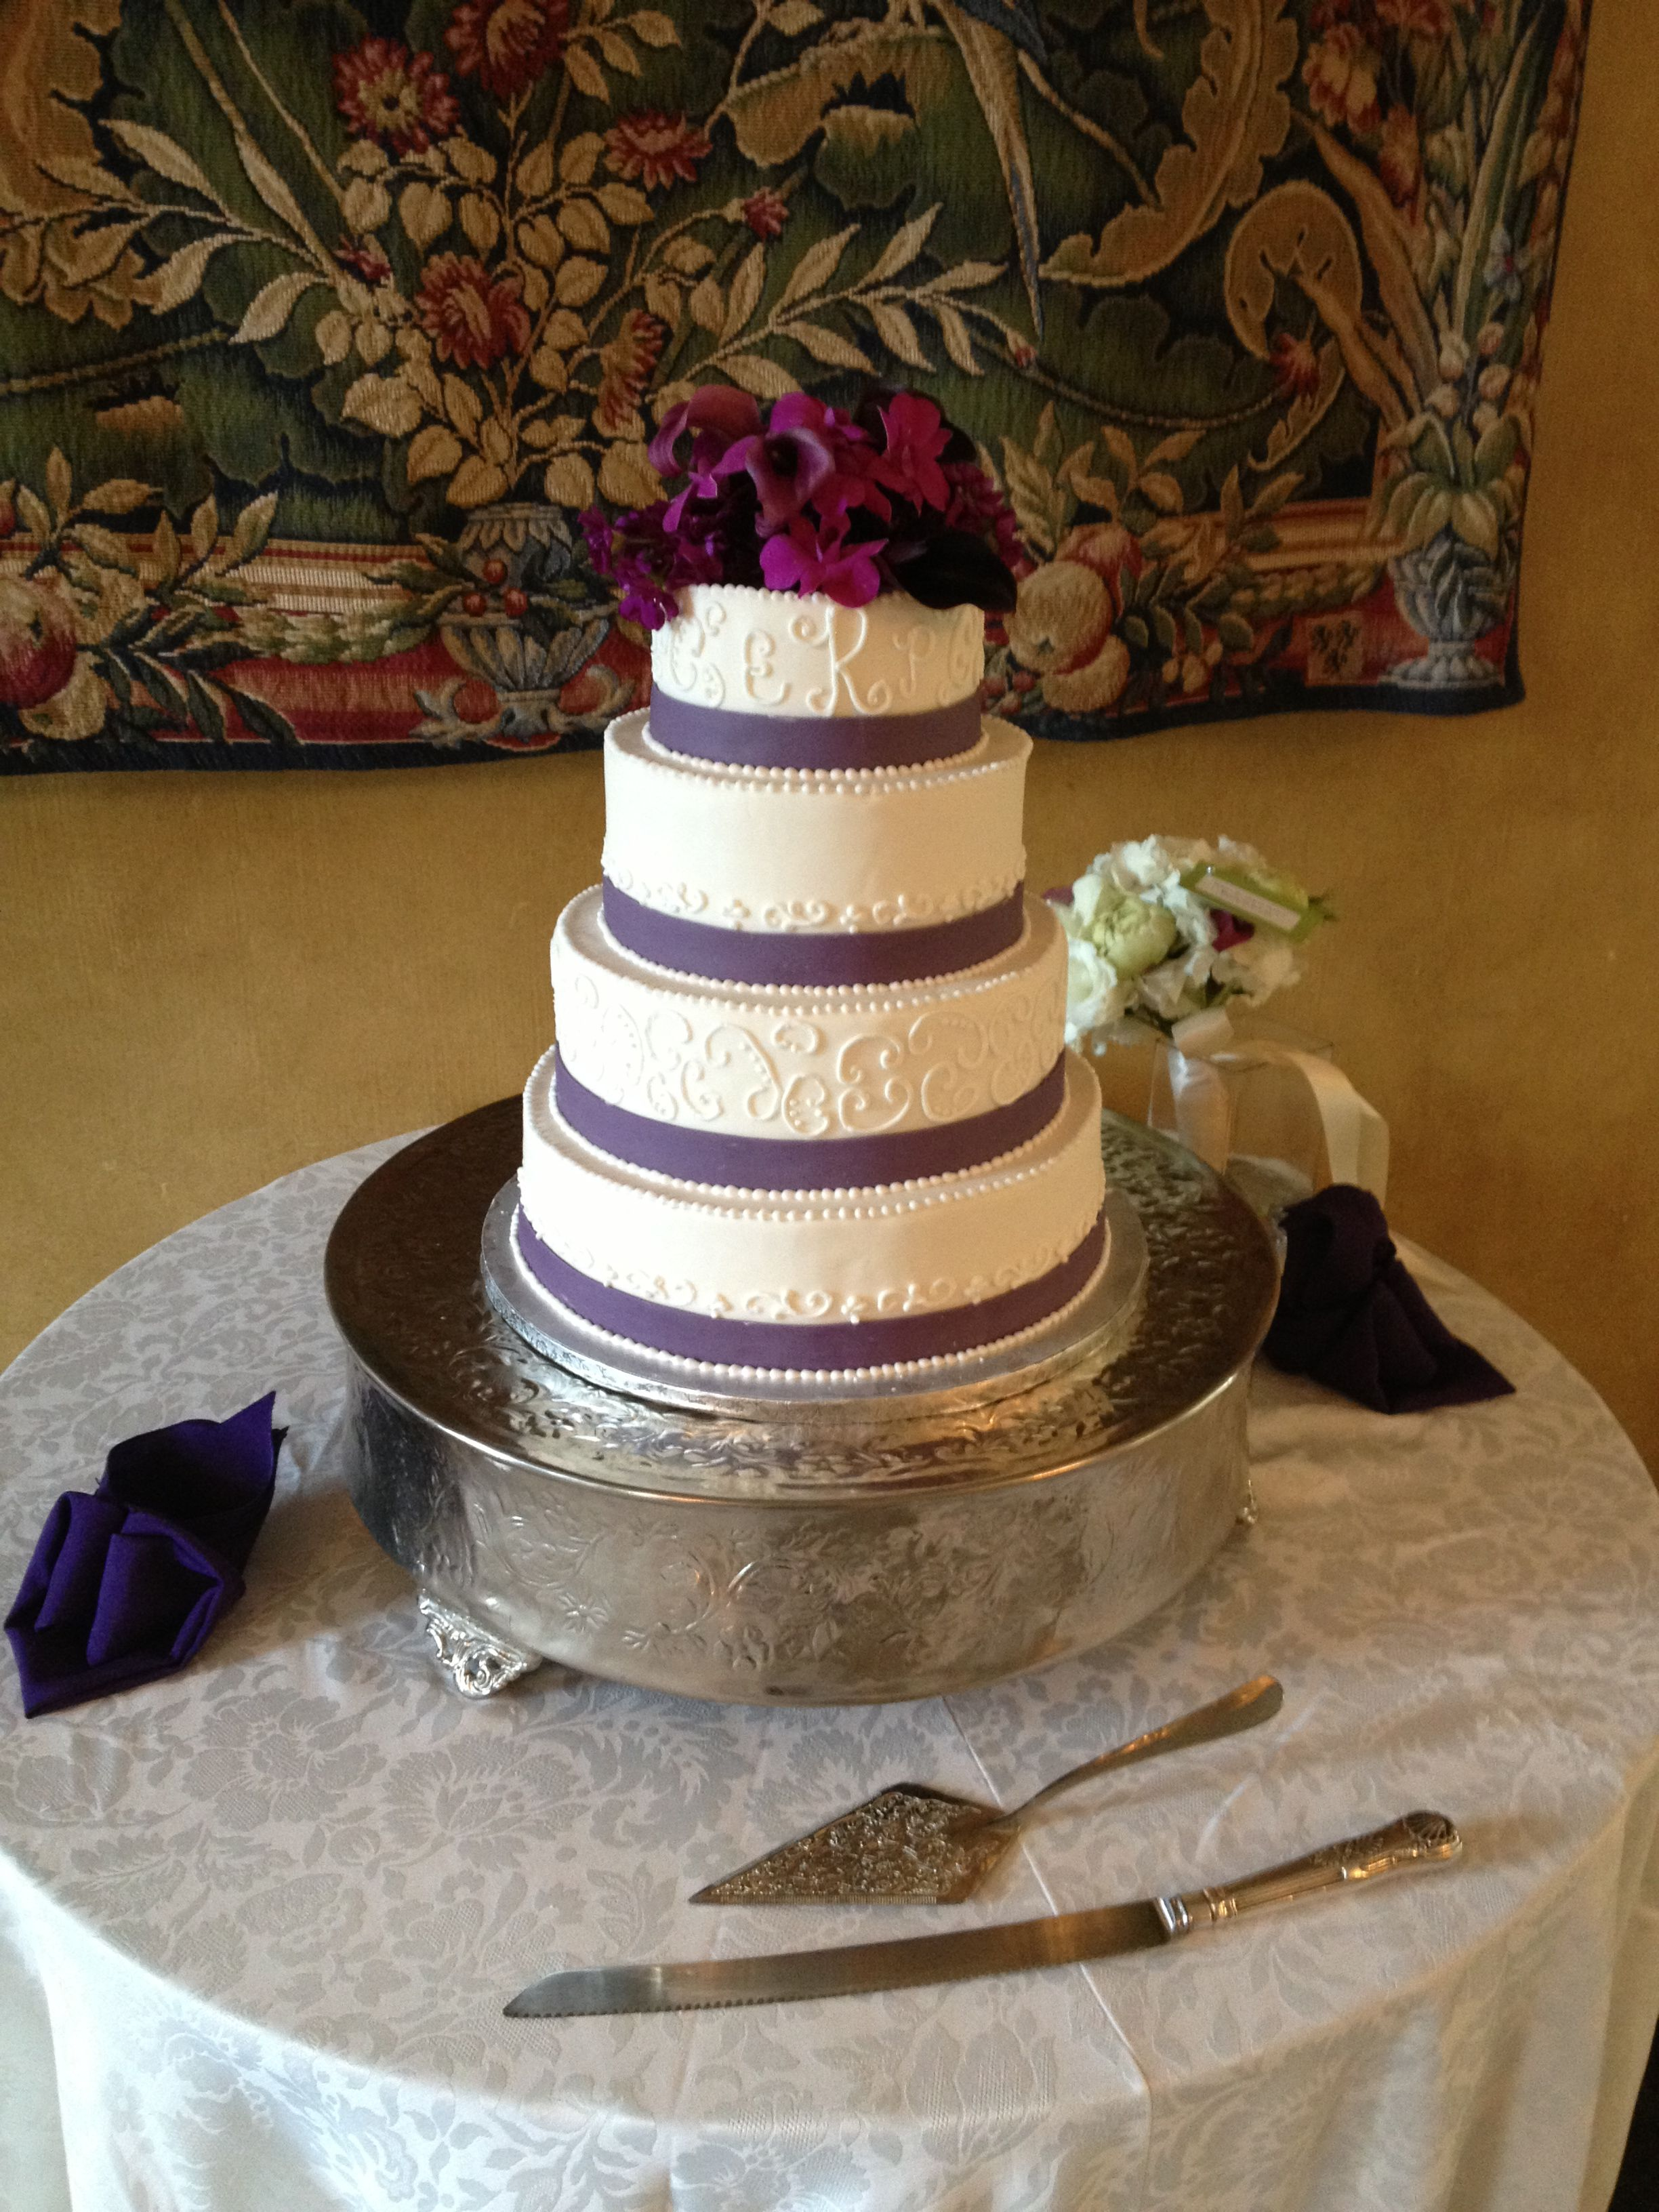 Beautiful Cake With Purple Accents By The Hotel Du Pont Bake Shop